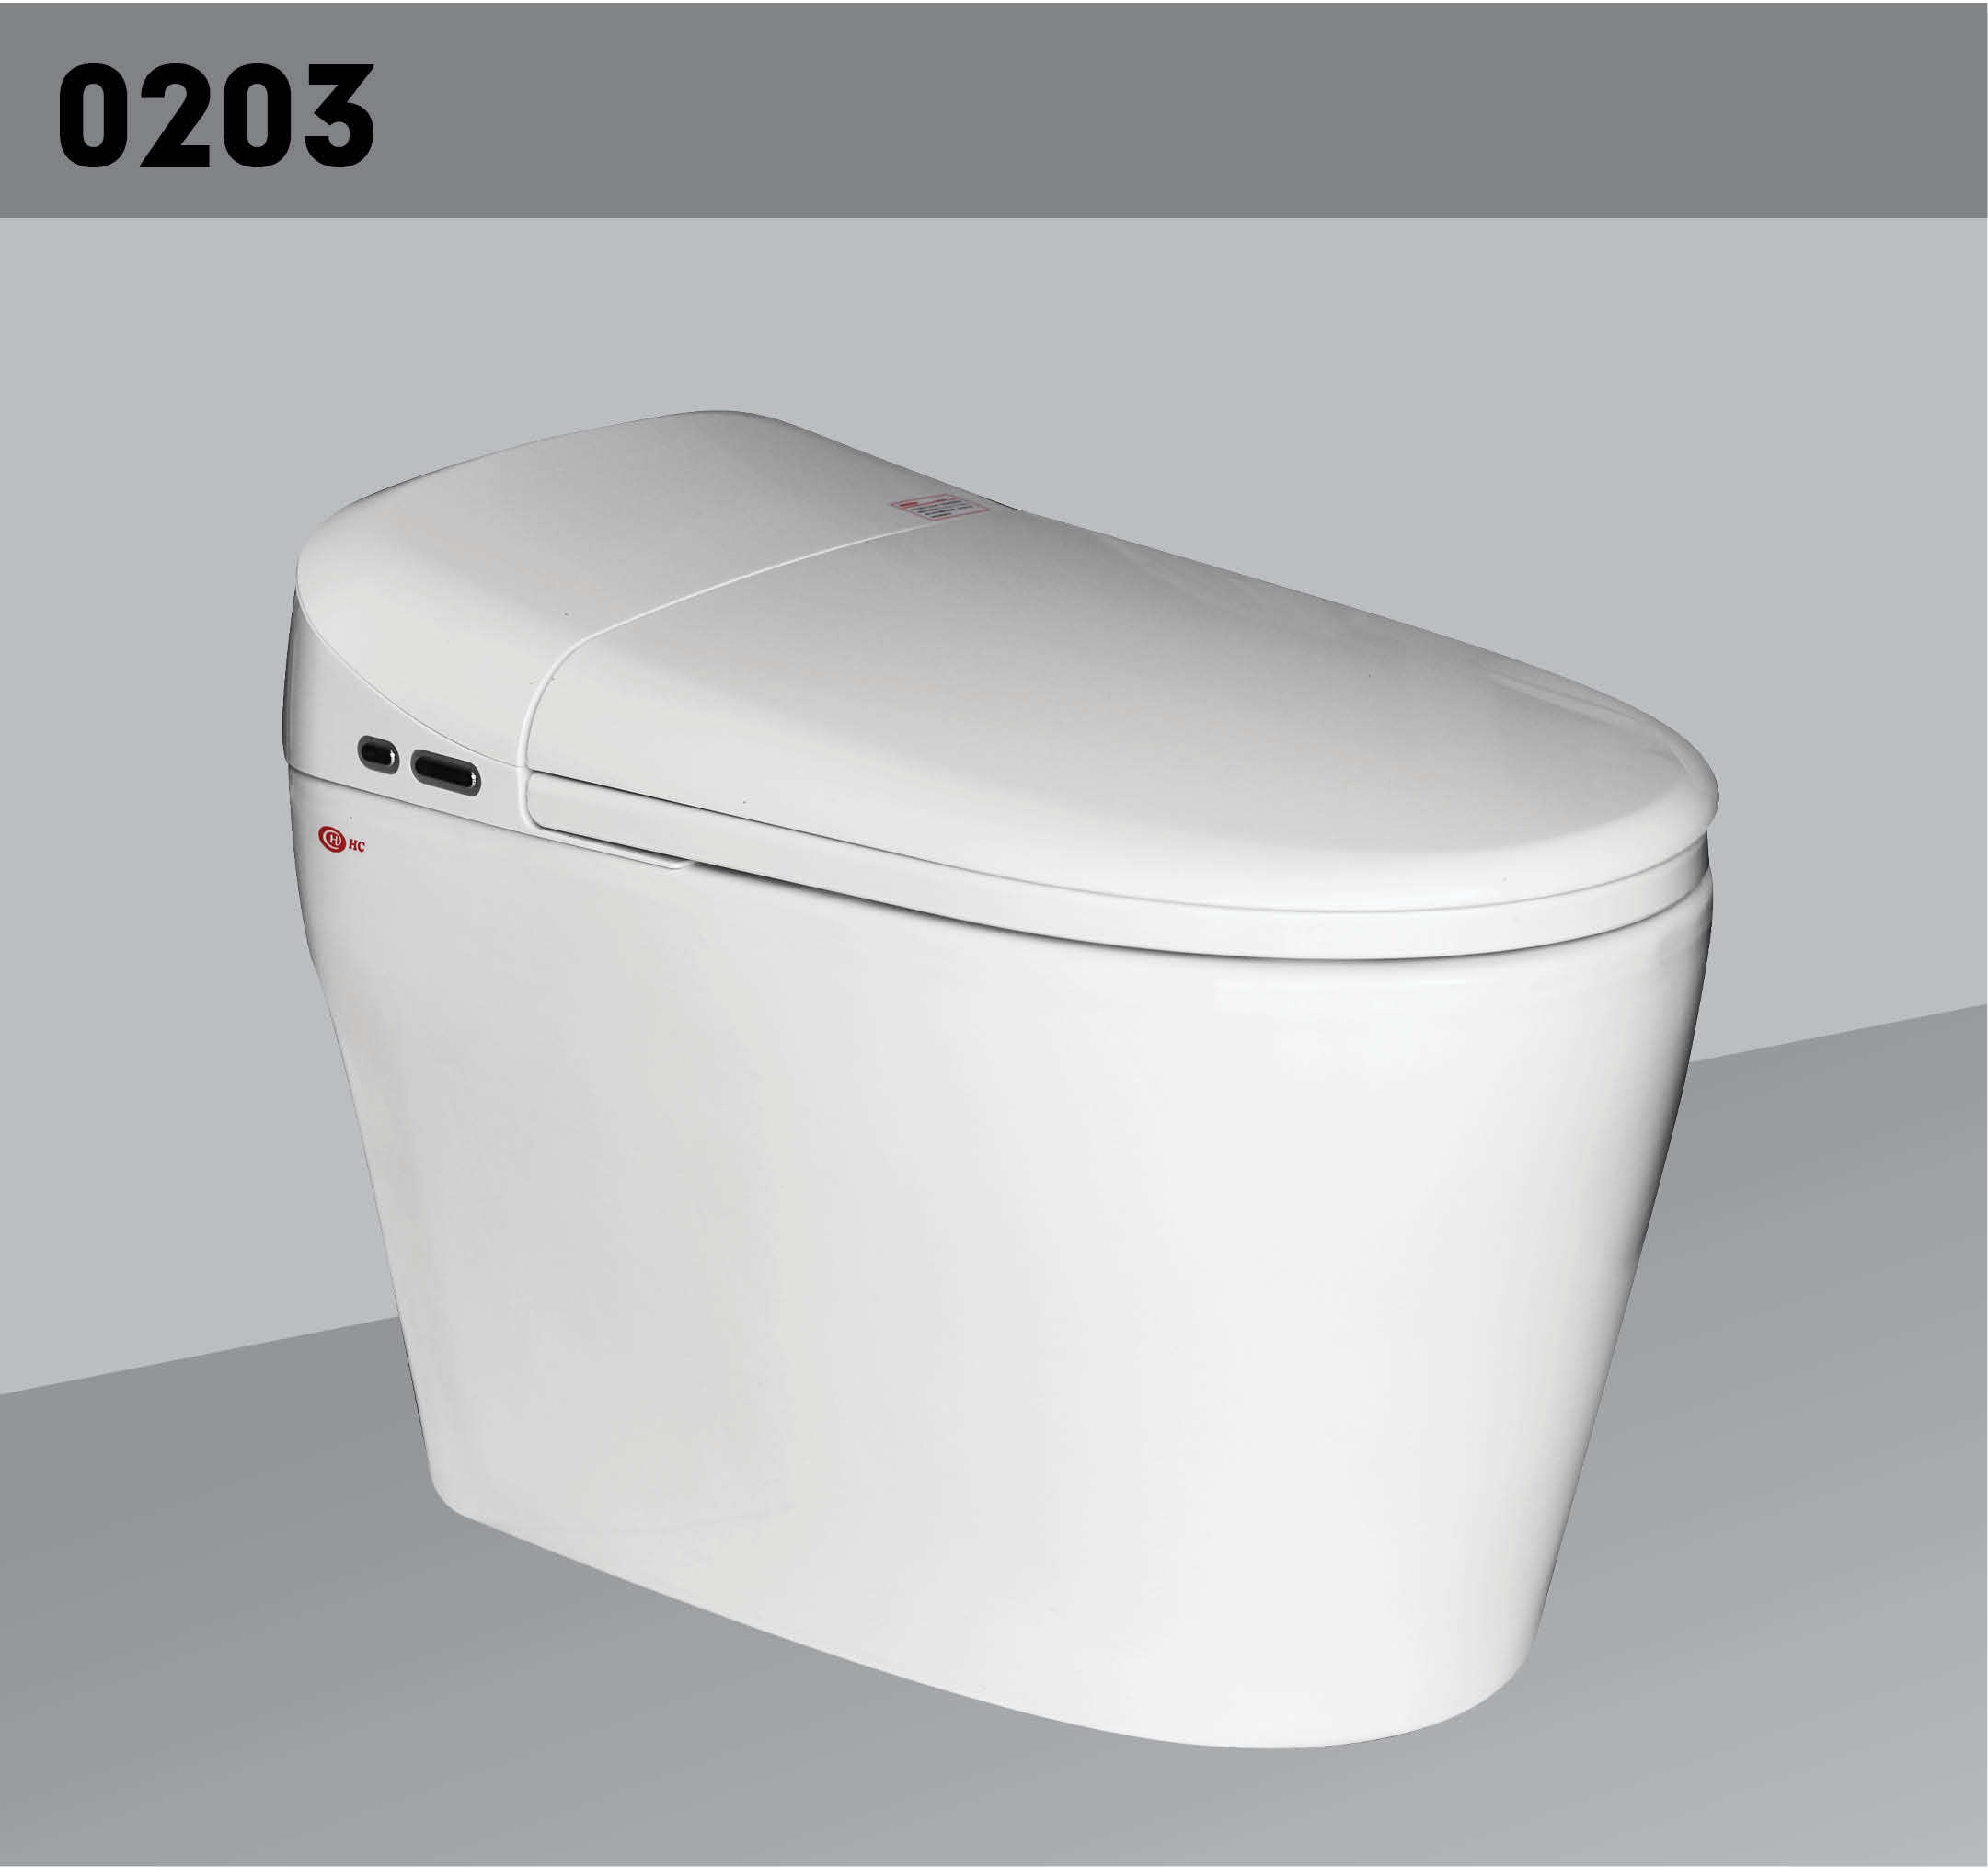 One Piece Smart Toilet With Automatic Toilet Seat , Viet Nam Ms Quyen: Whatsapp/ Wechat/ Mob: +84 936 991 094